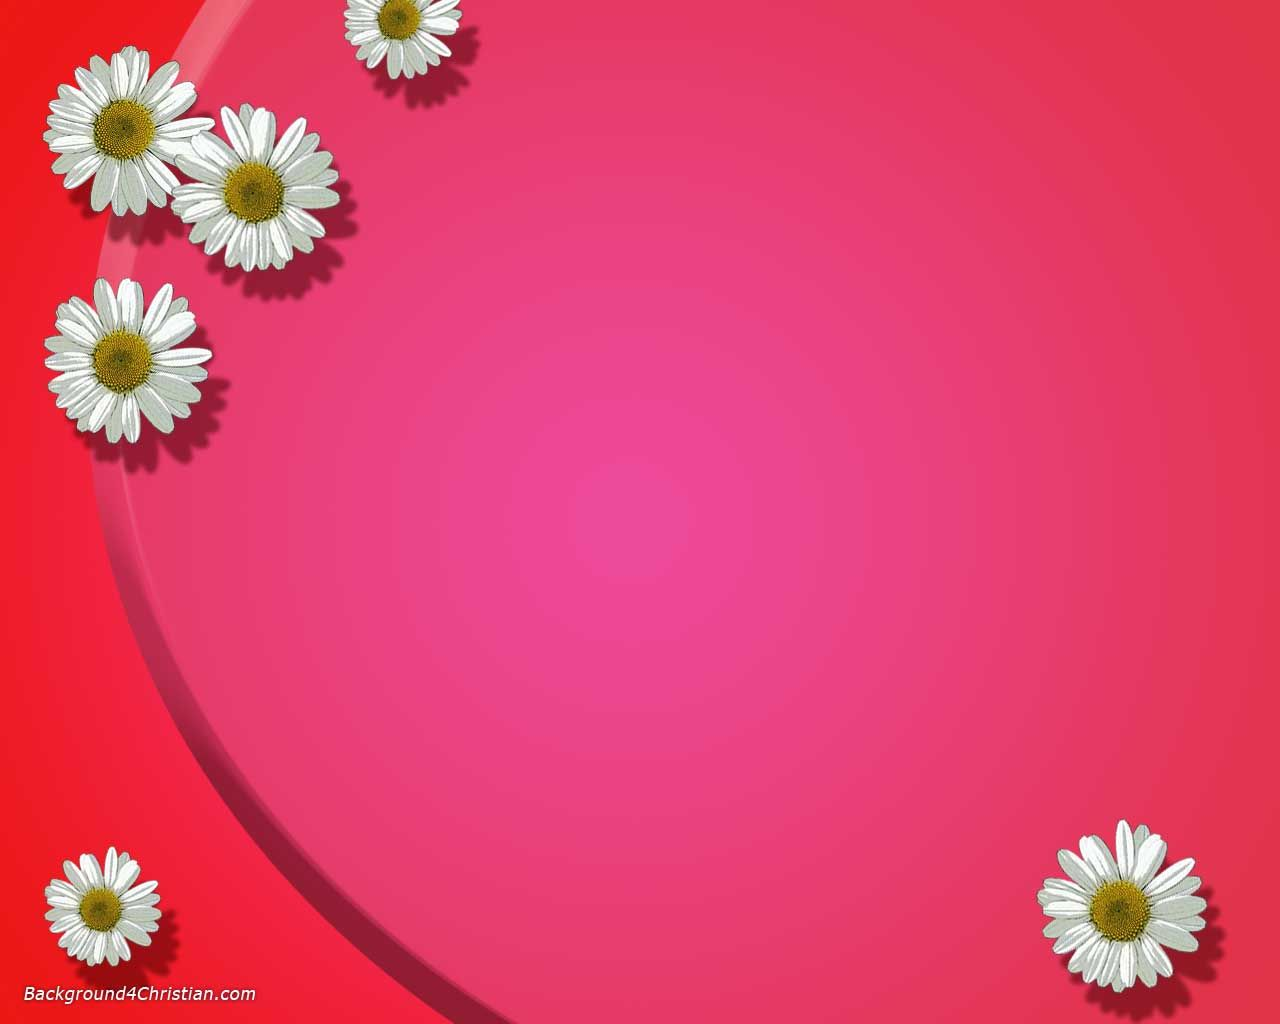 Background 4 Christian - Free Download Christian Clipart ...